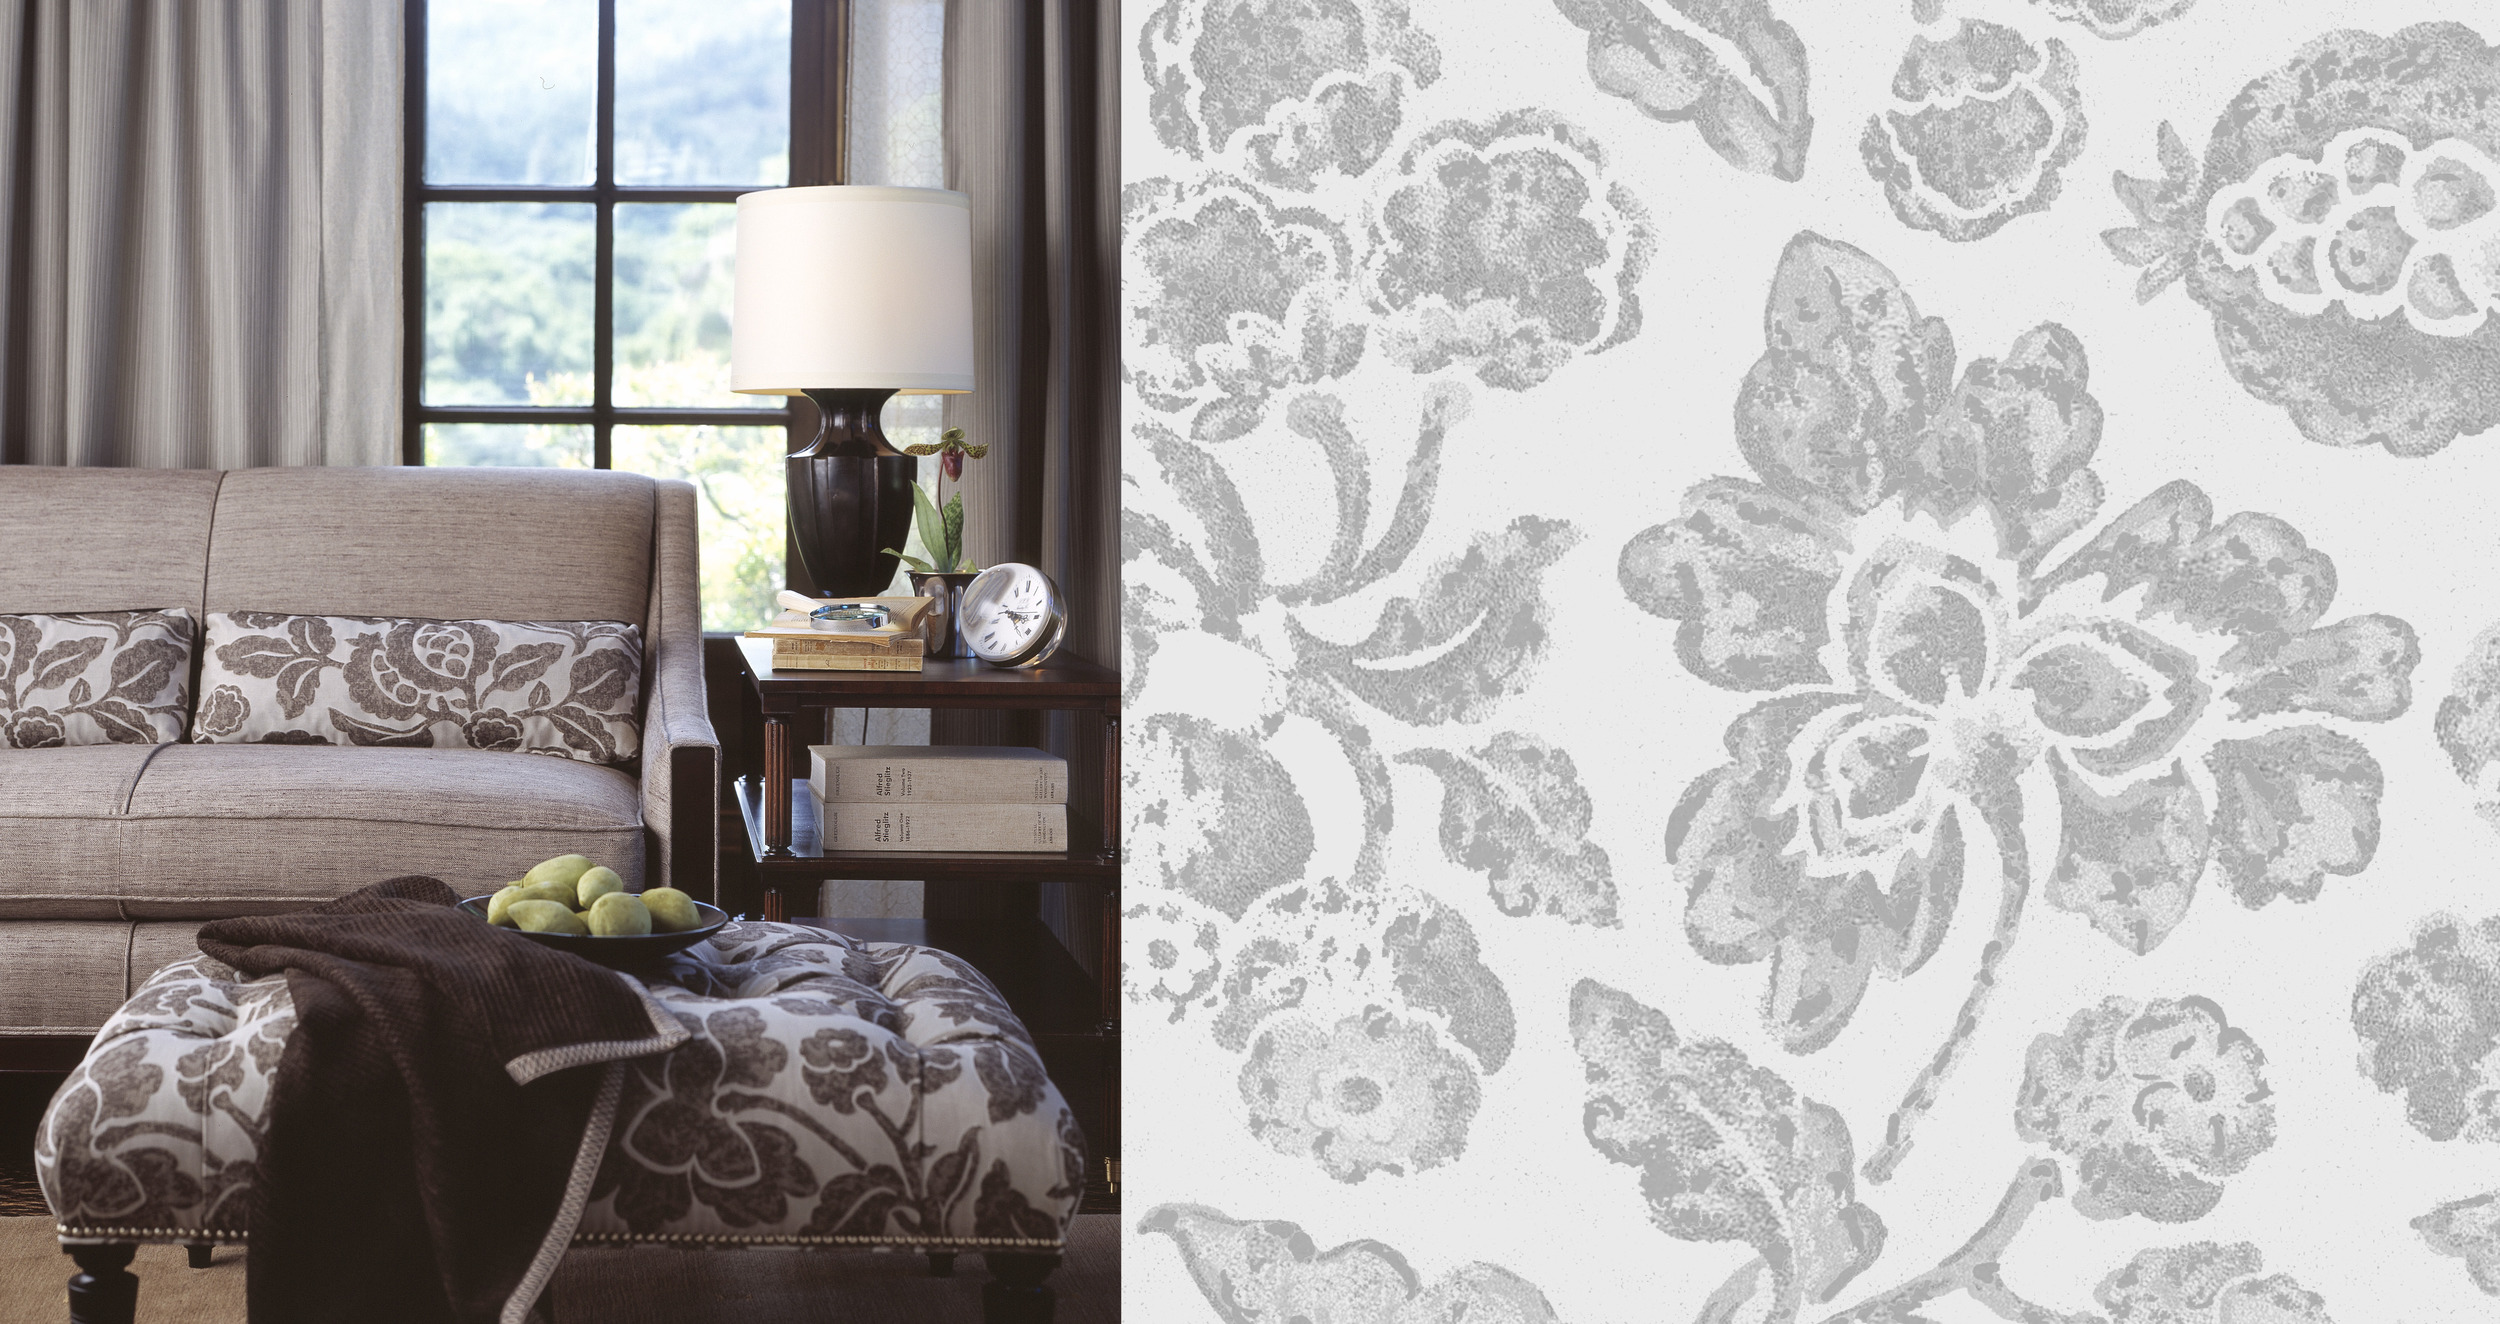 Barbara Barry for Kravet  - Five extensive collections of residential upholstery, drapery and trim created in collaboration with Barbara Barry and Kravet.